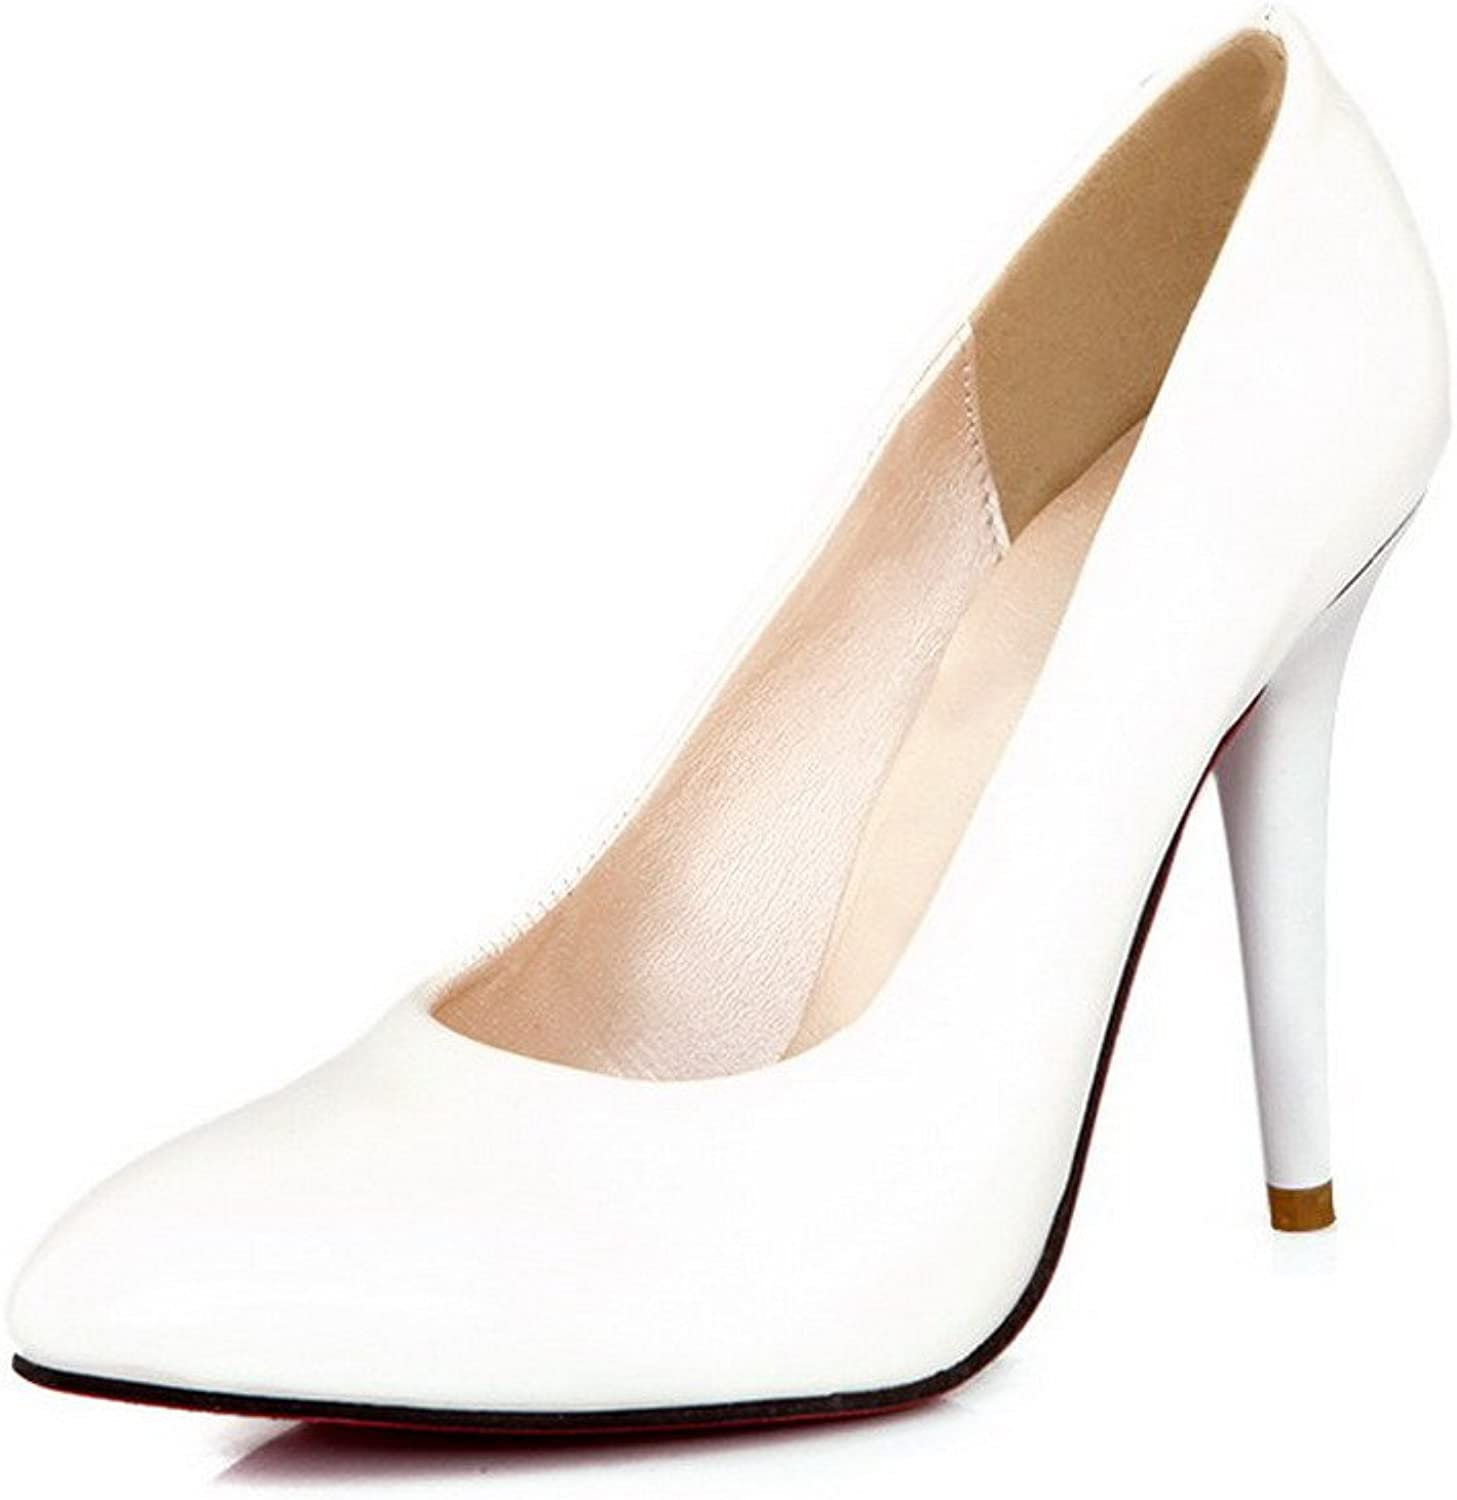 WeiPoot Women's Patent Leather Pointed Closed Toe Spikes-Stilettos Pumps-shoes, White, 34